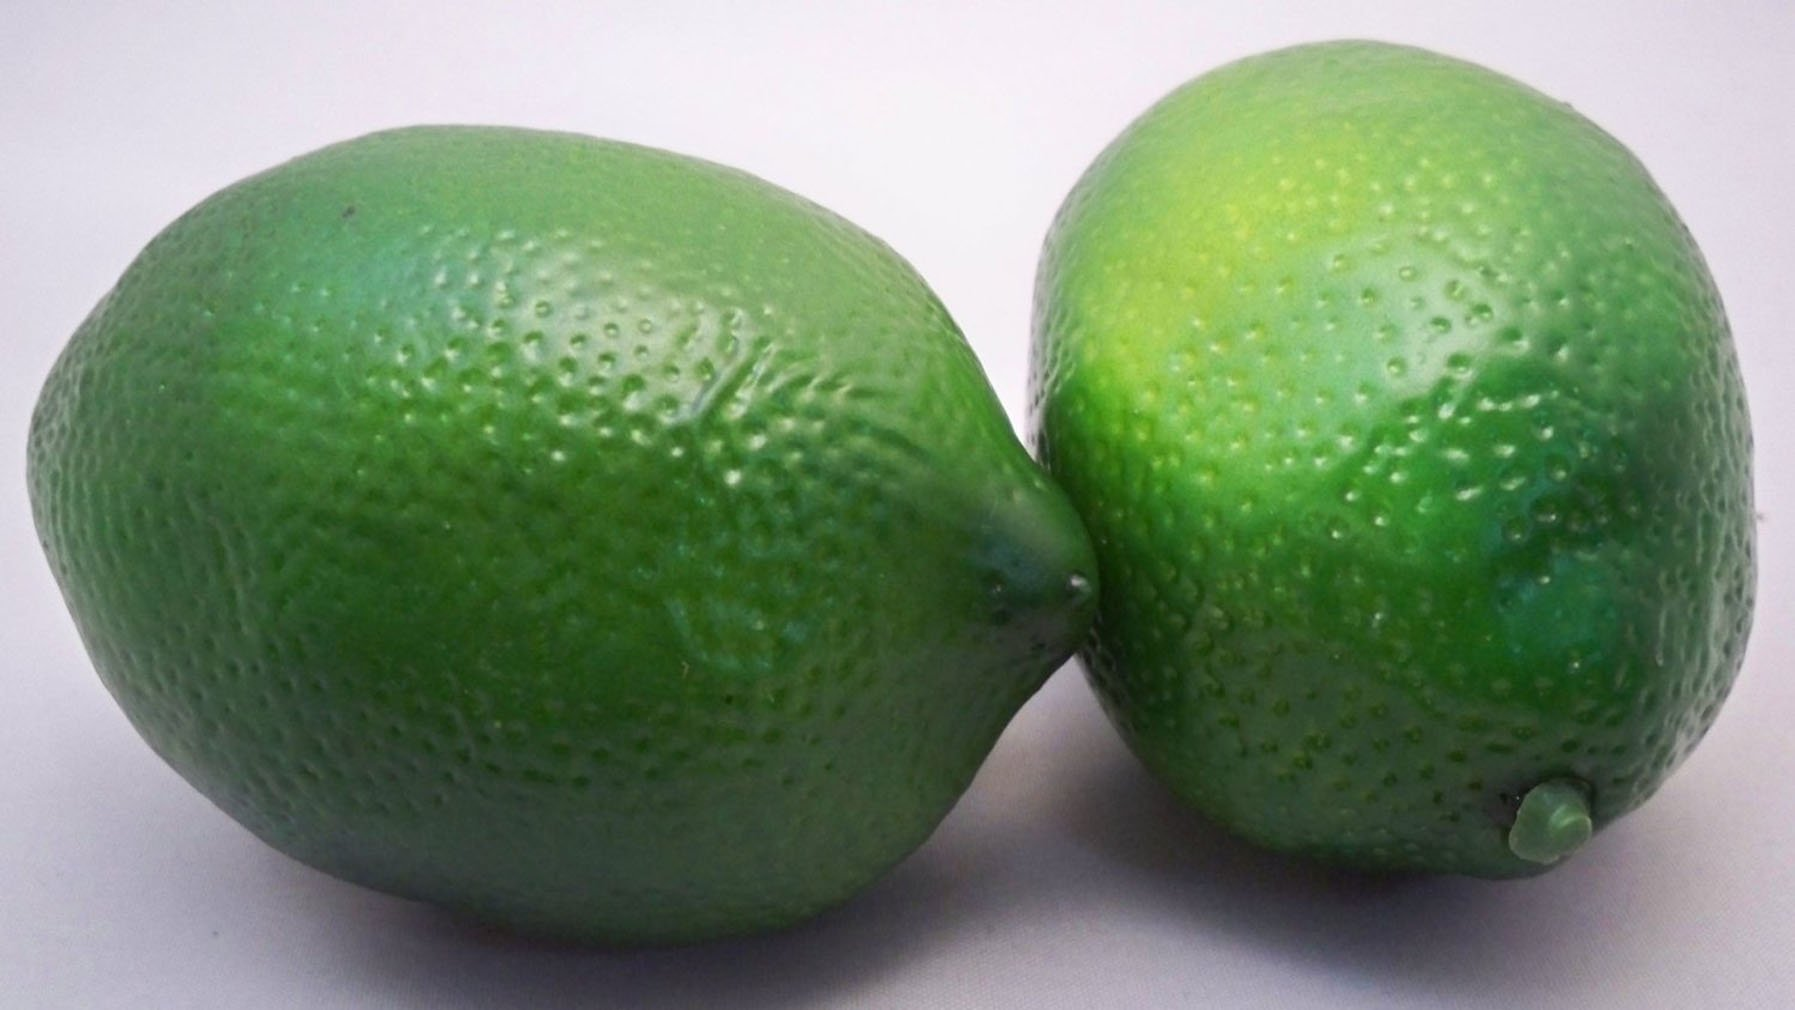 RuiChy 4 Large Best Artificial Limes Decorative Fruit by RuiChy (Image #3)